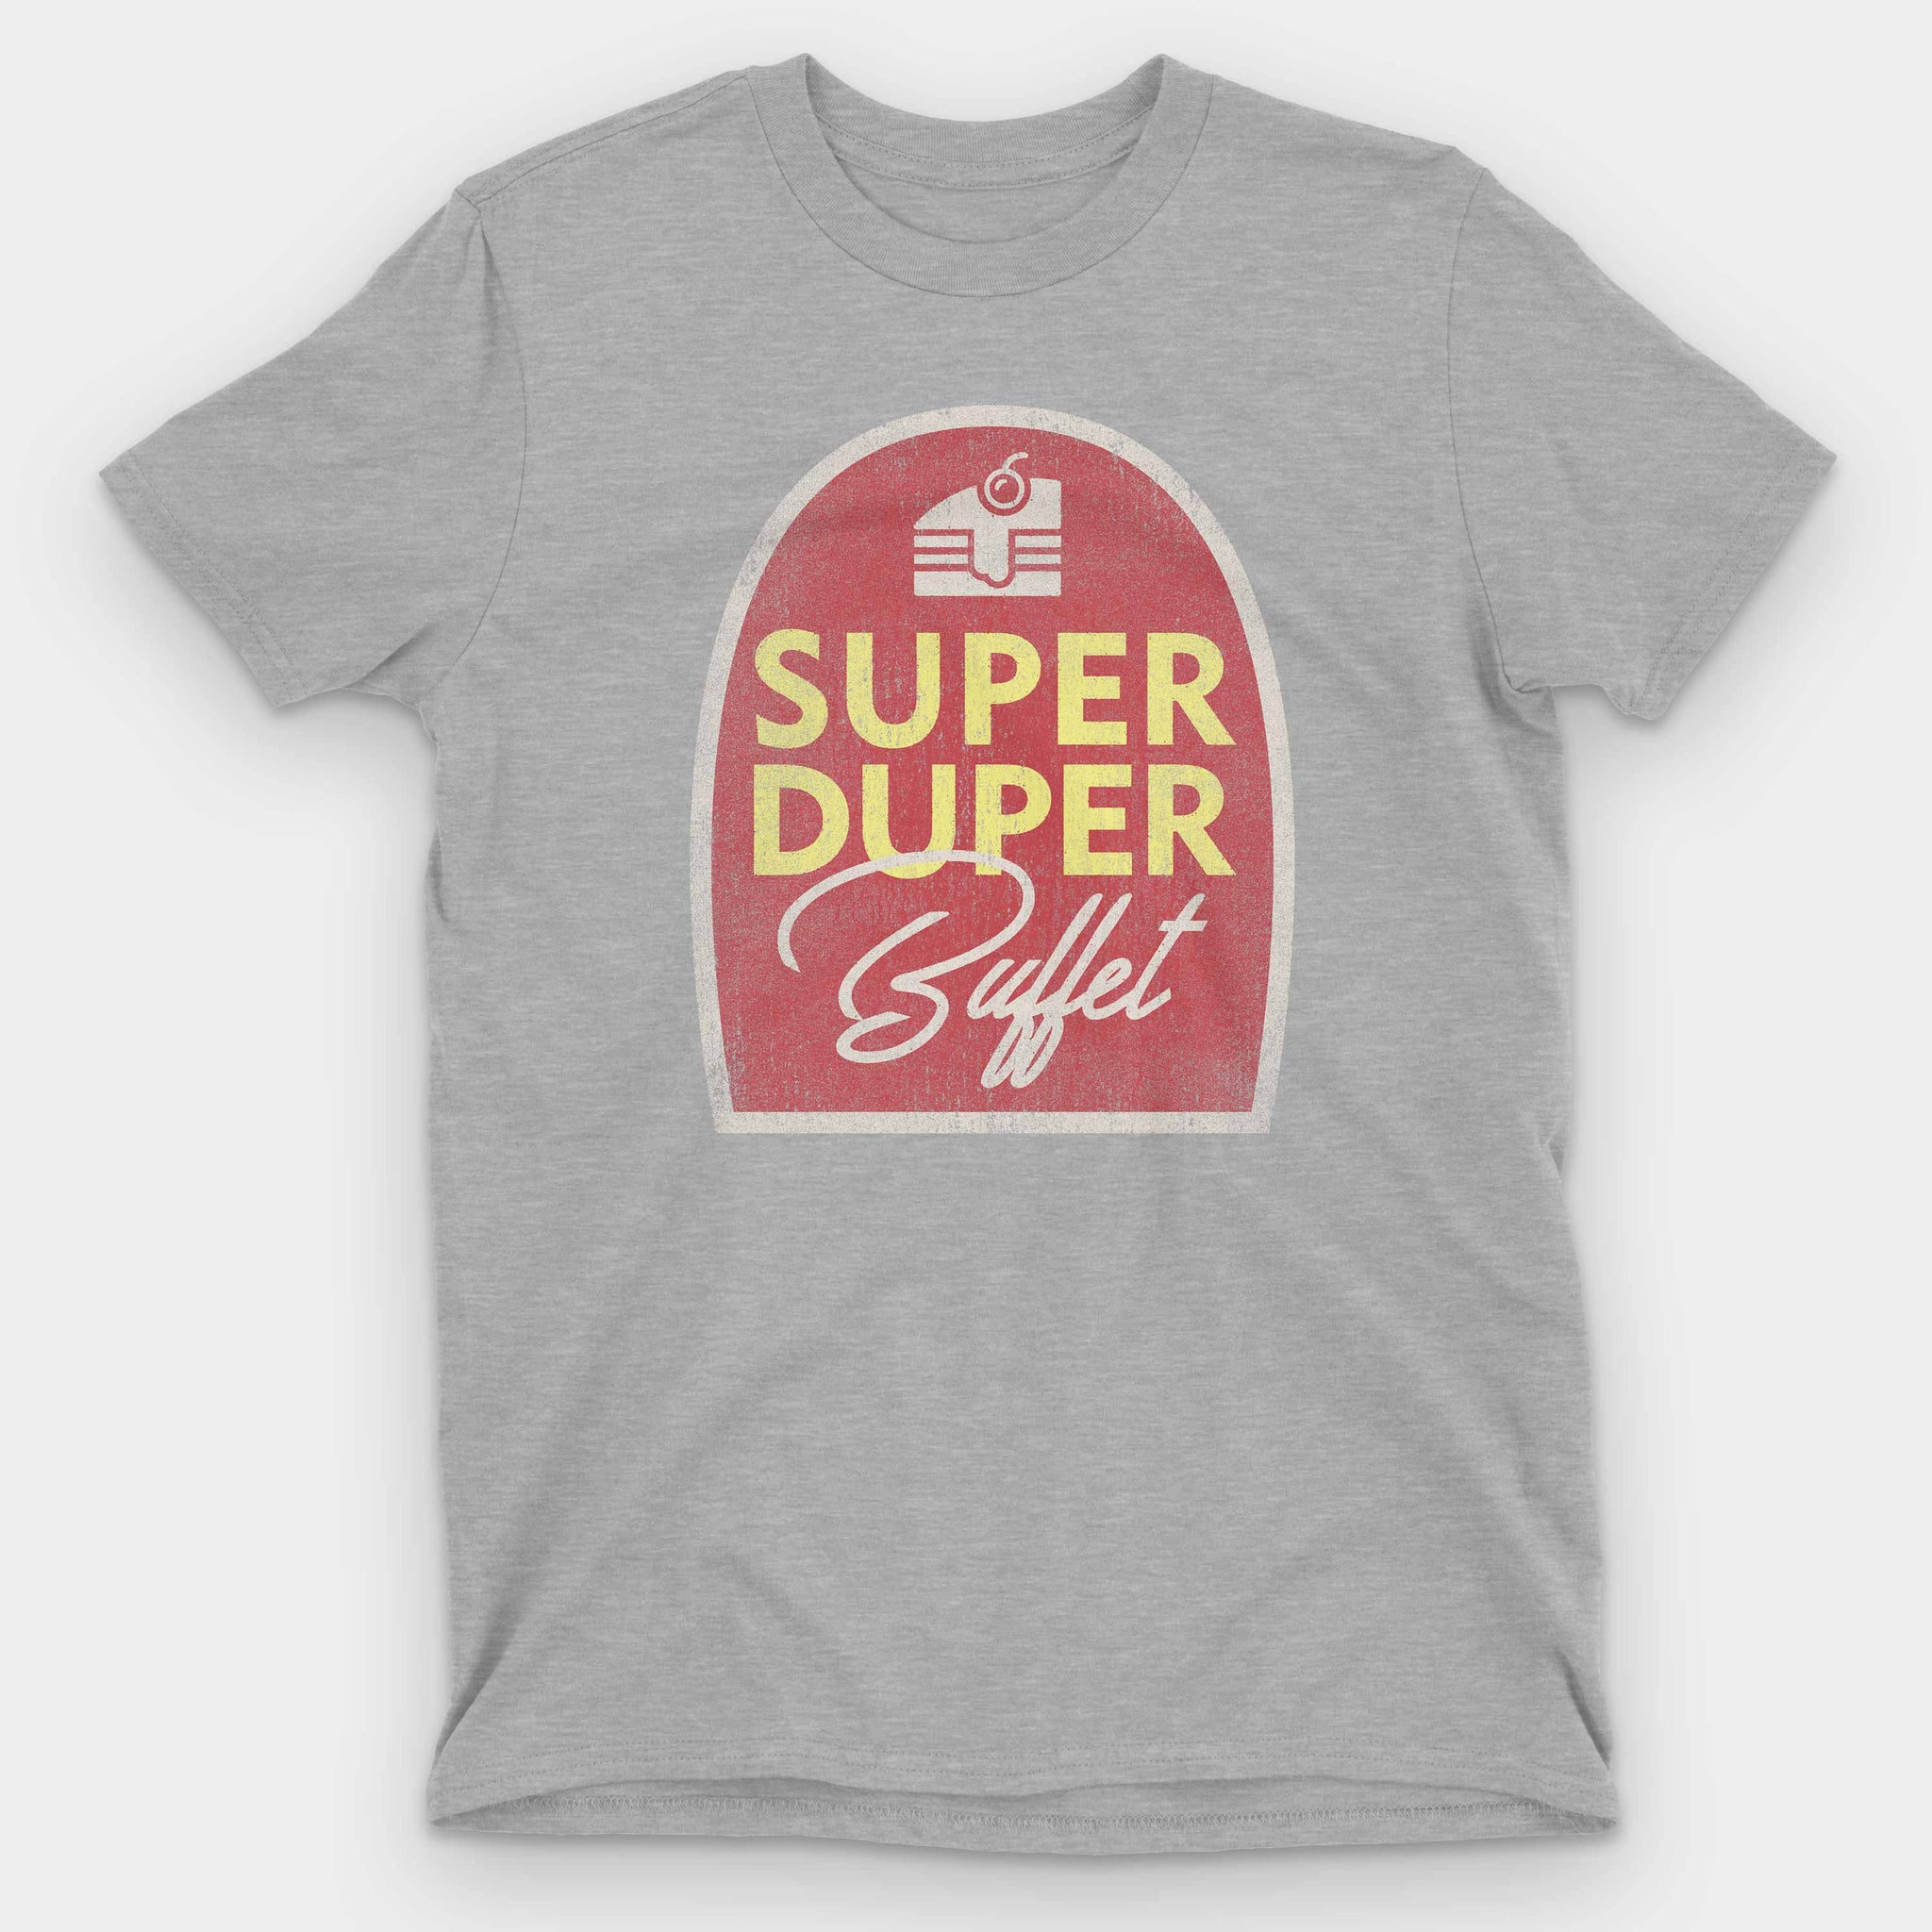 Super Duper Buffet Graphic T-Shirt